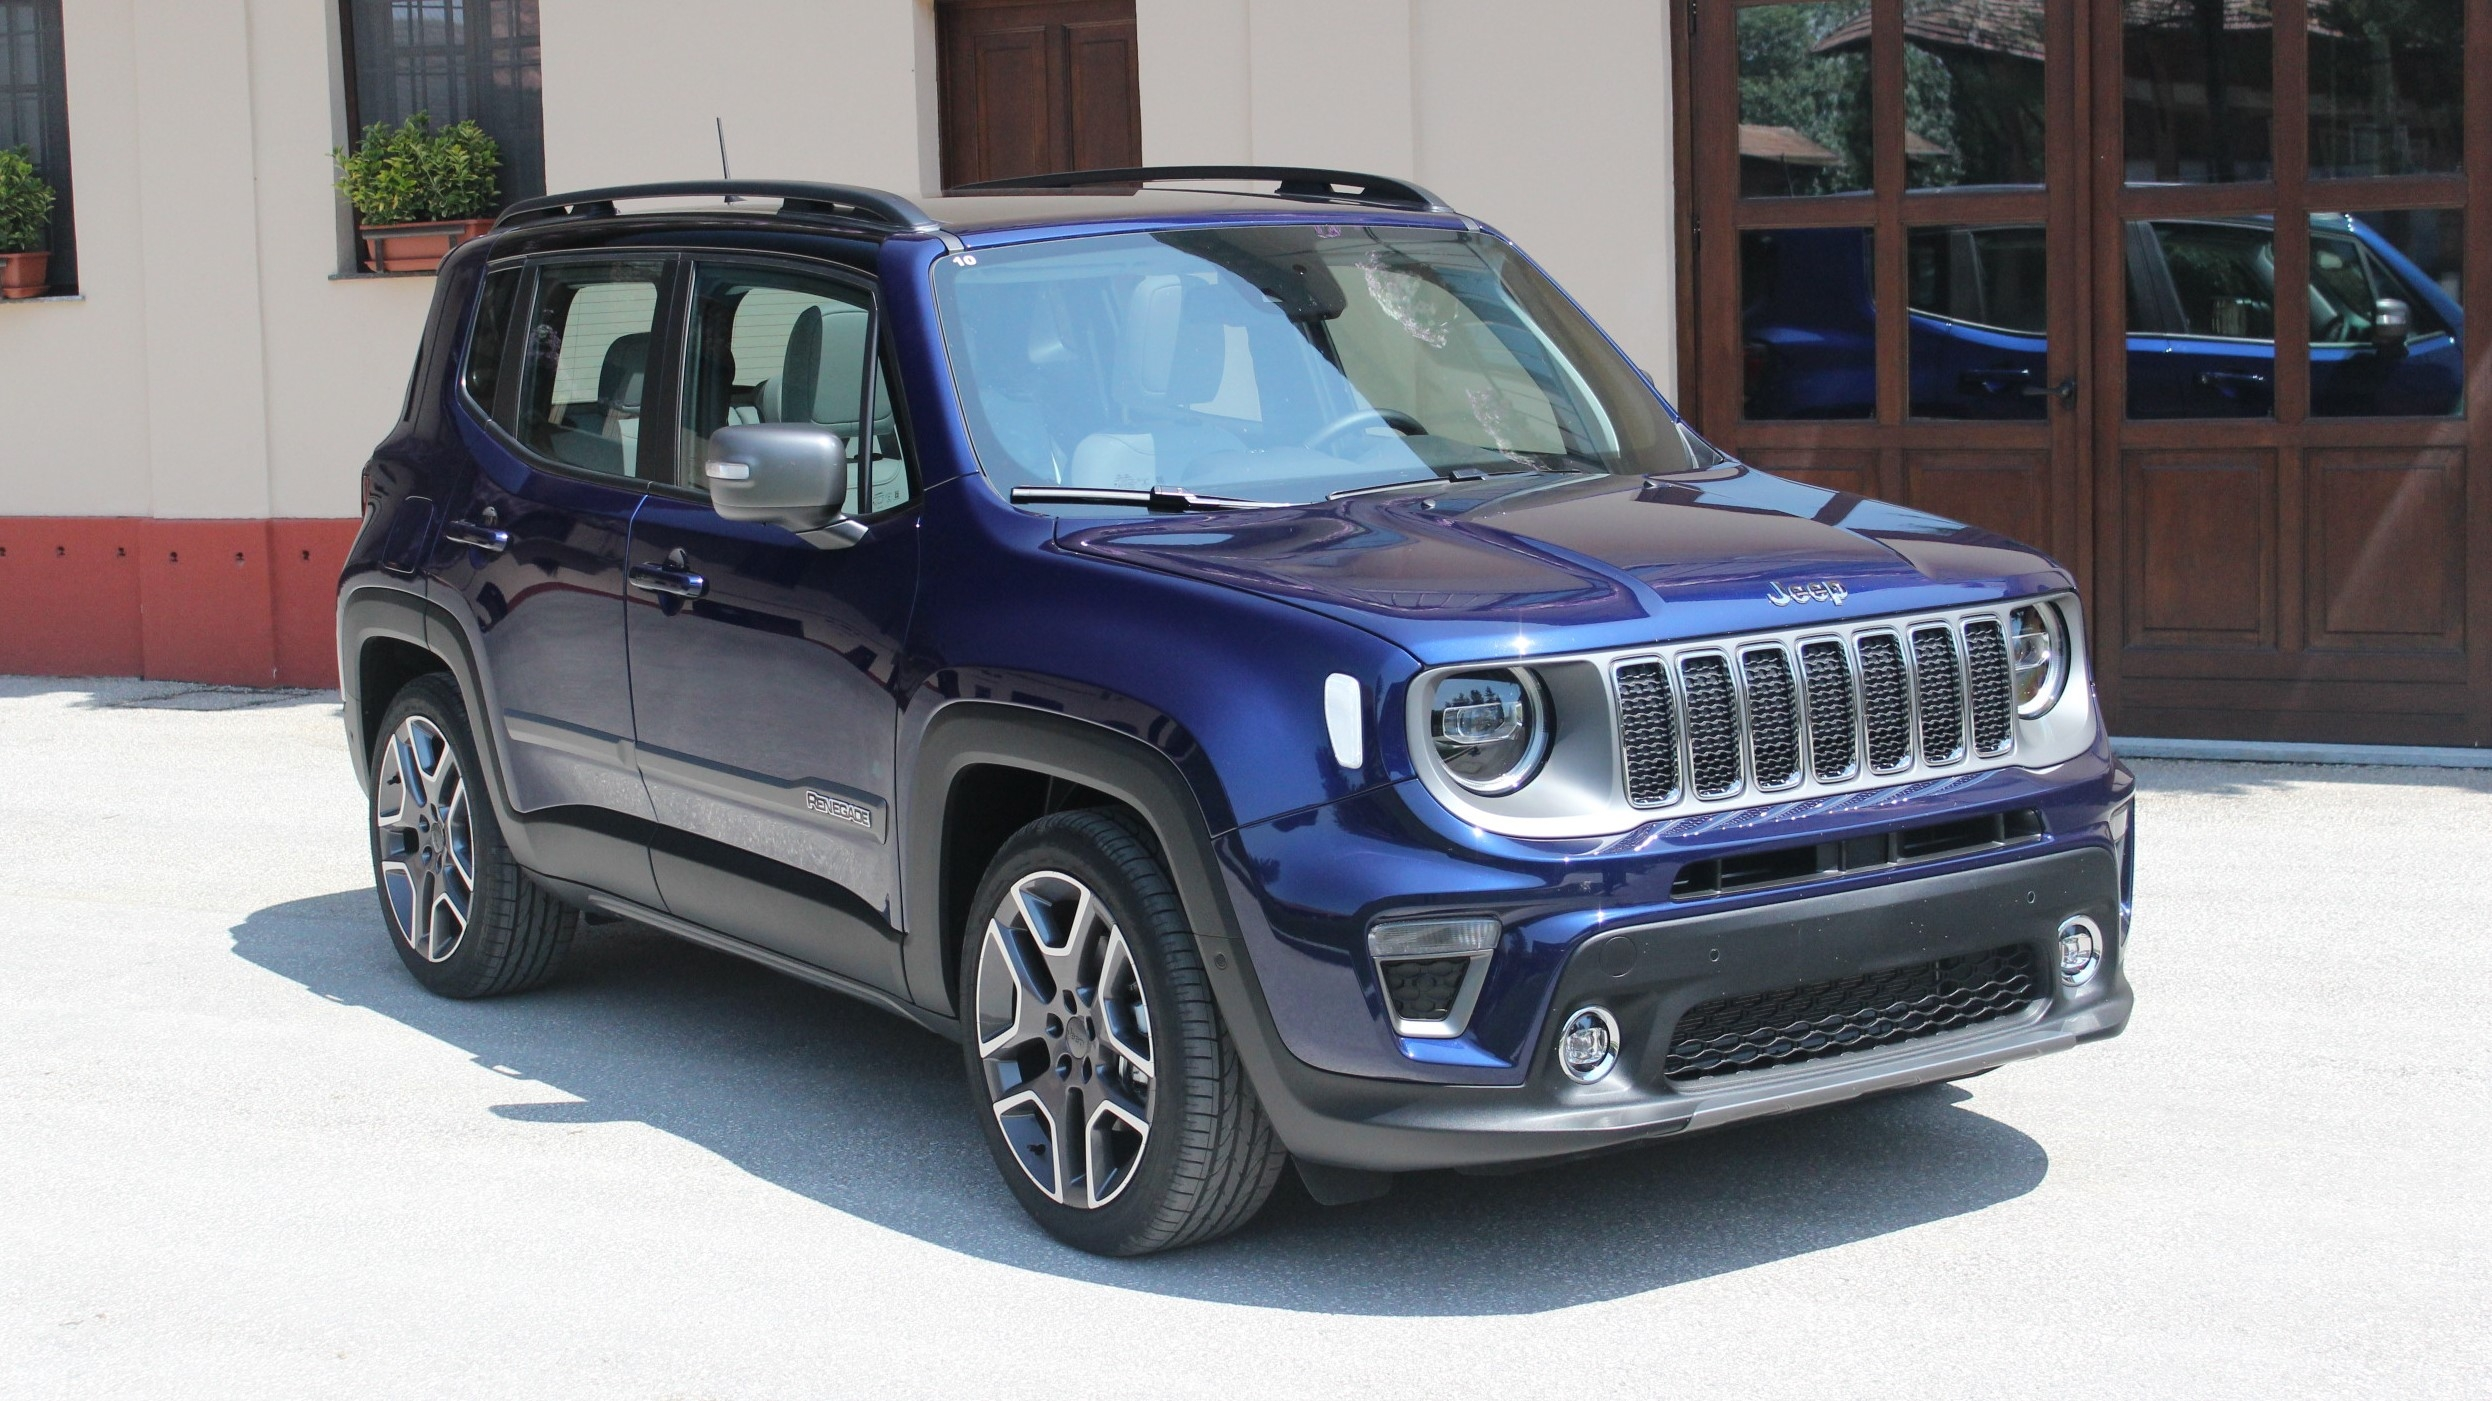 essai vid o jeep renegade restyl 2018 volution sans r volution. Black Bedroom Furniture Sets. Home Design Ideas